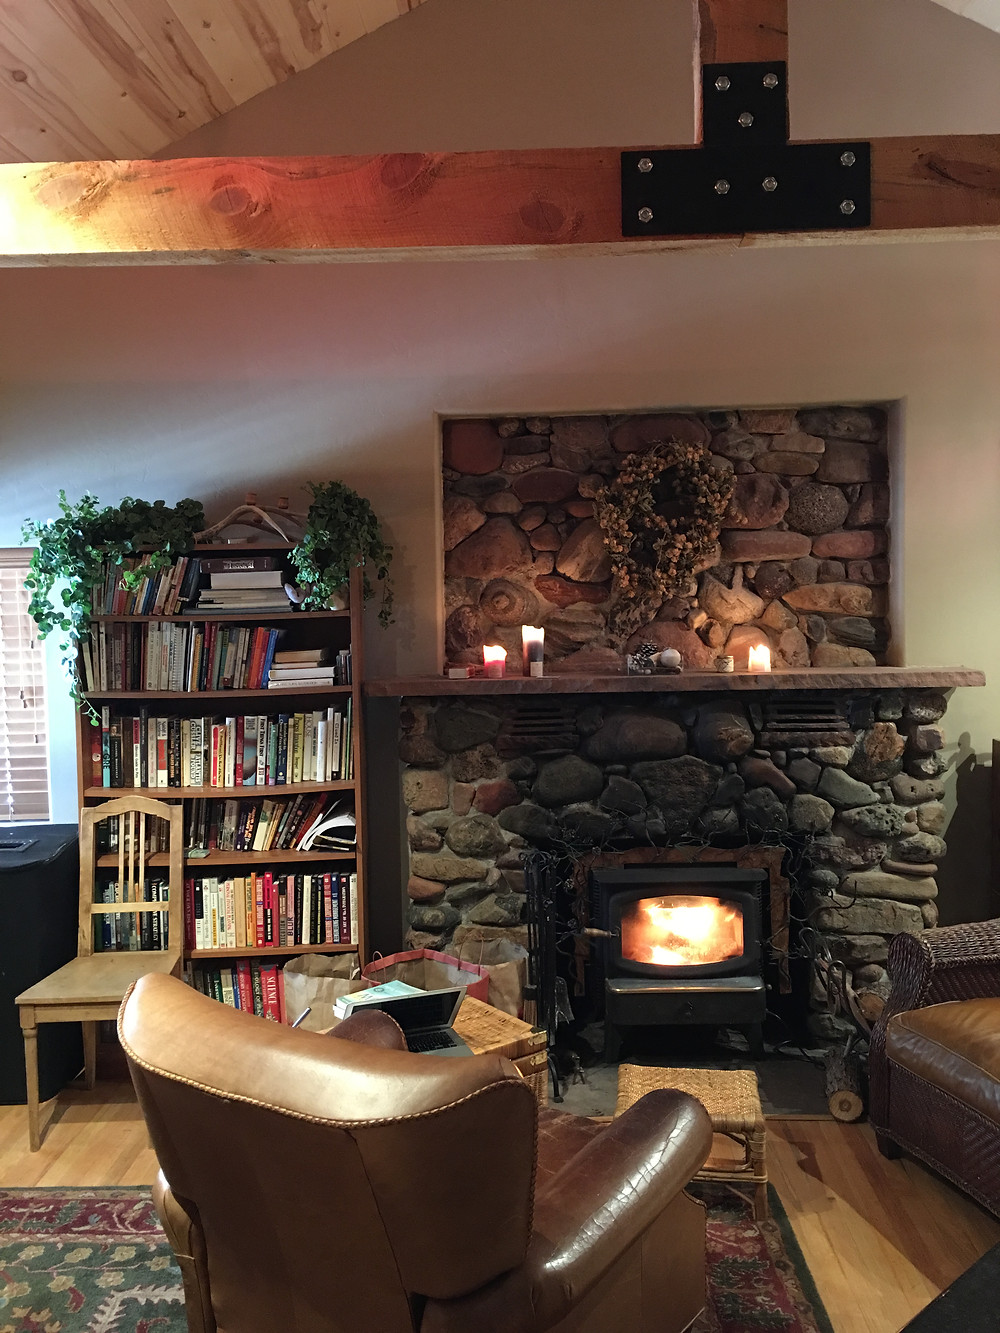 Inside Wheeling log-cabin surrounded by books, fire in the fireplace and leather chairs.